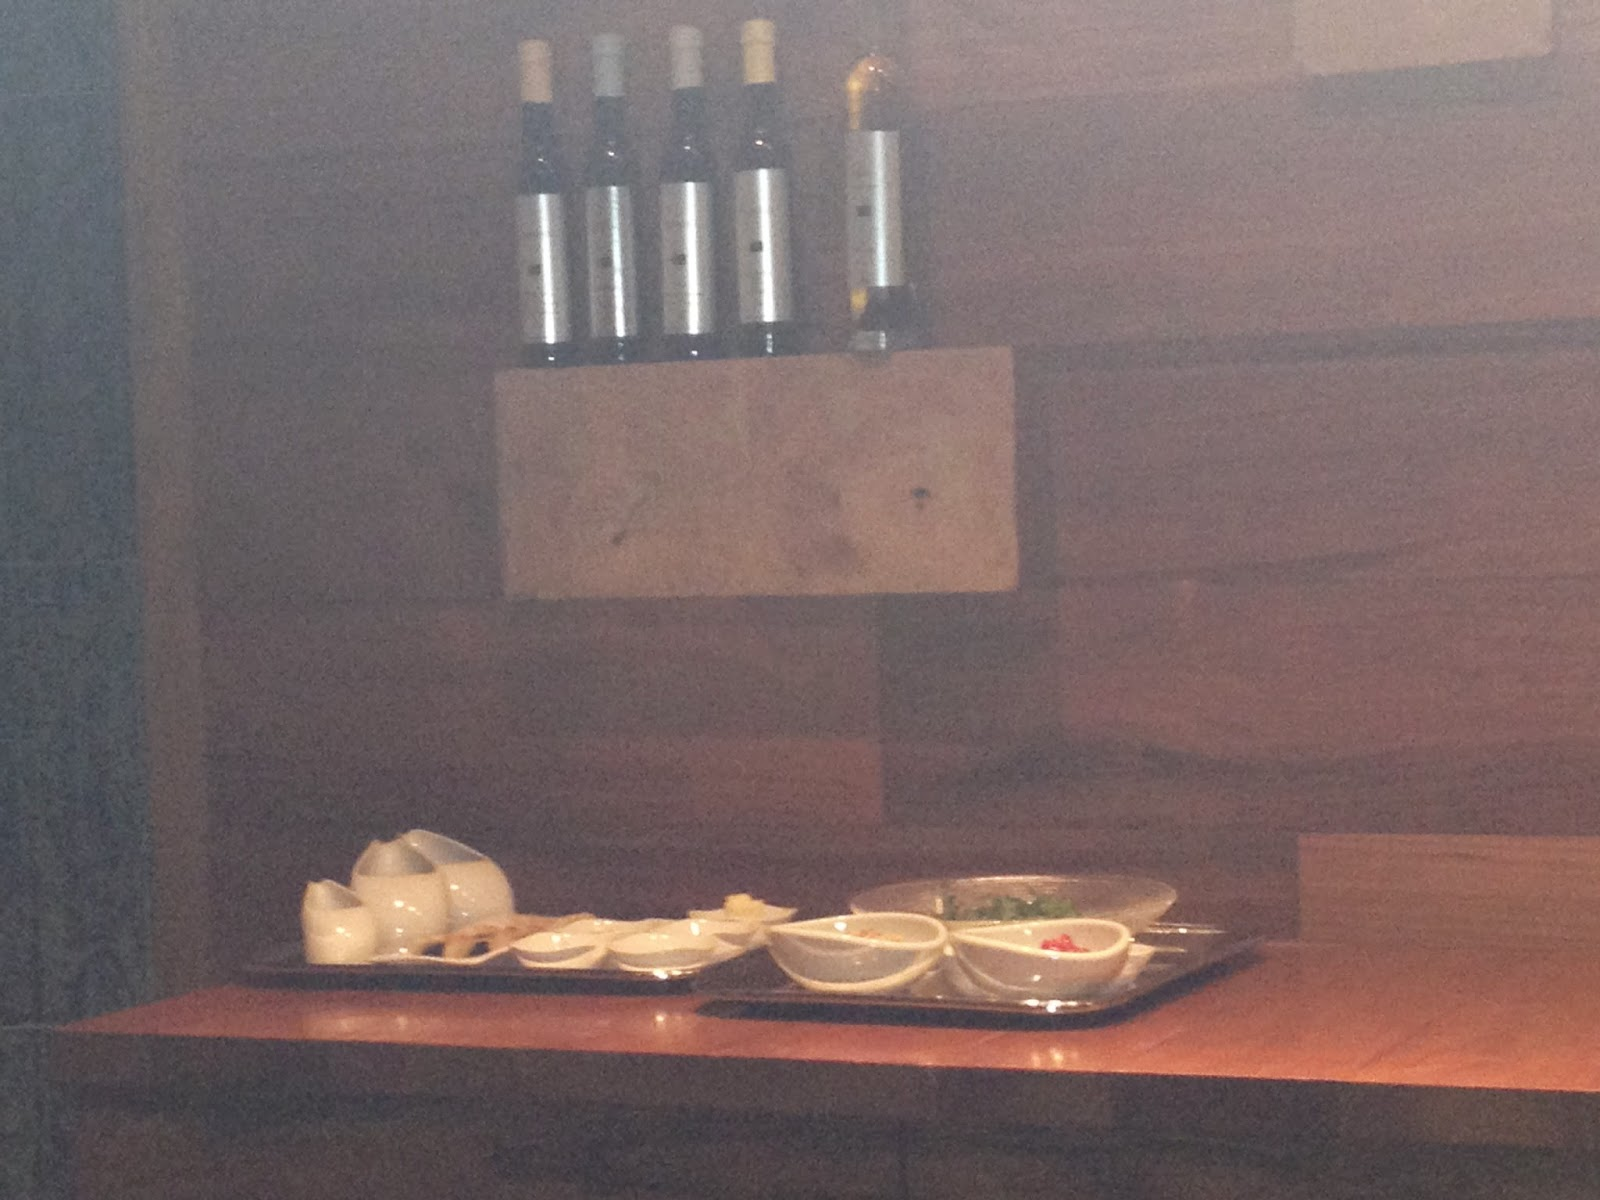 The kitchen bench behind the chef